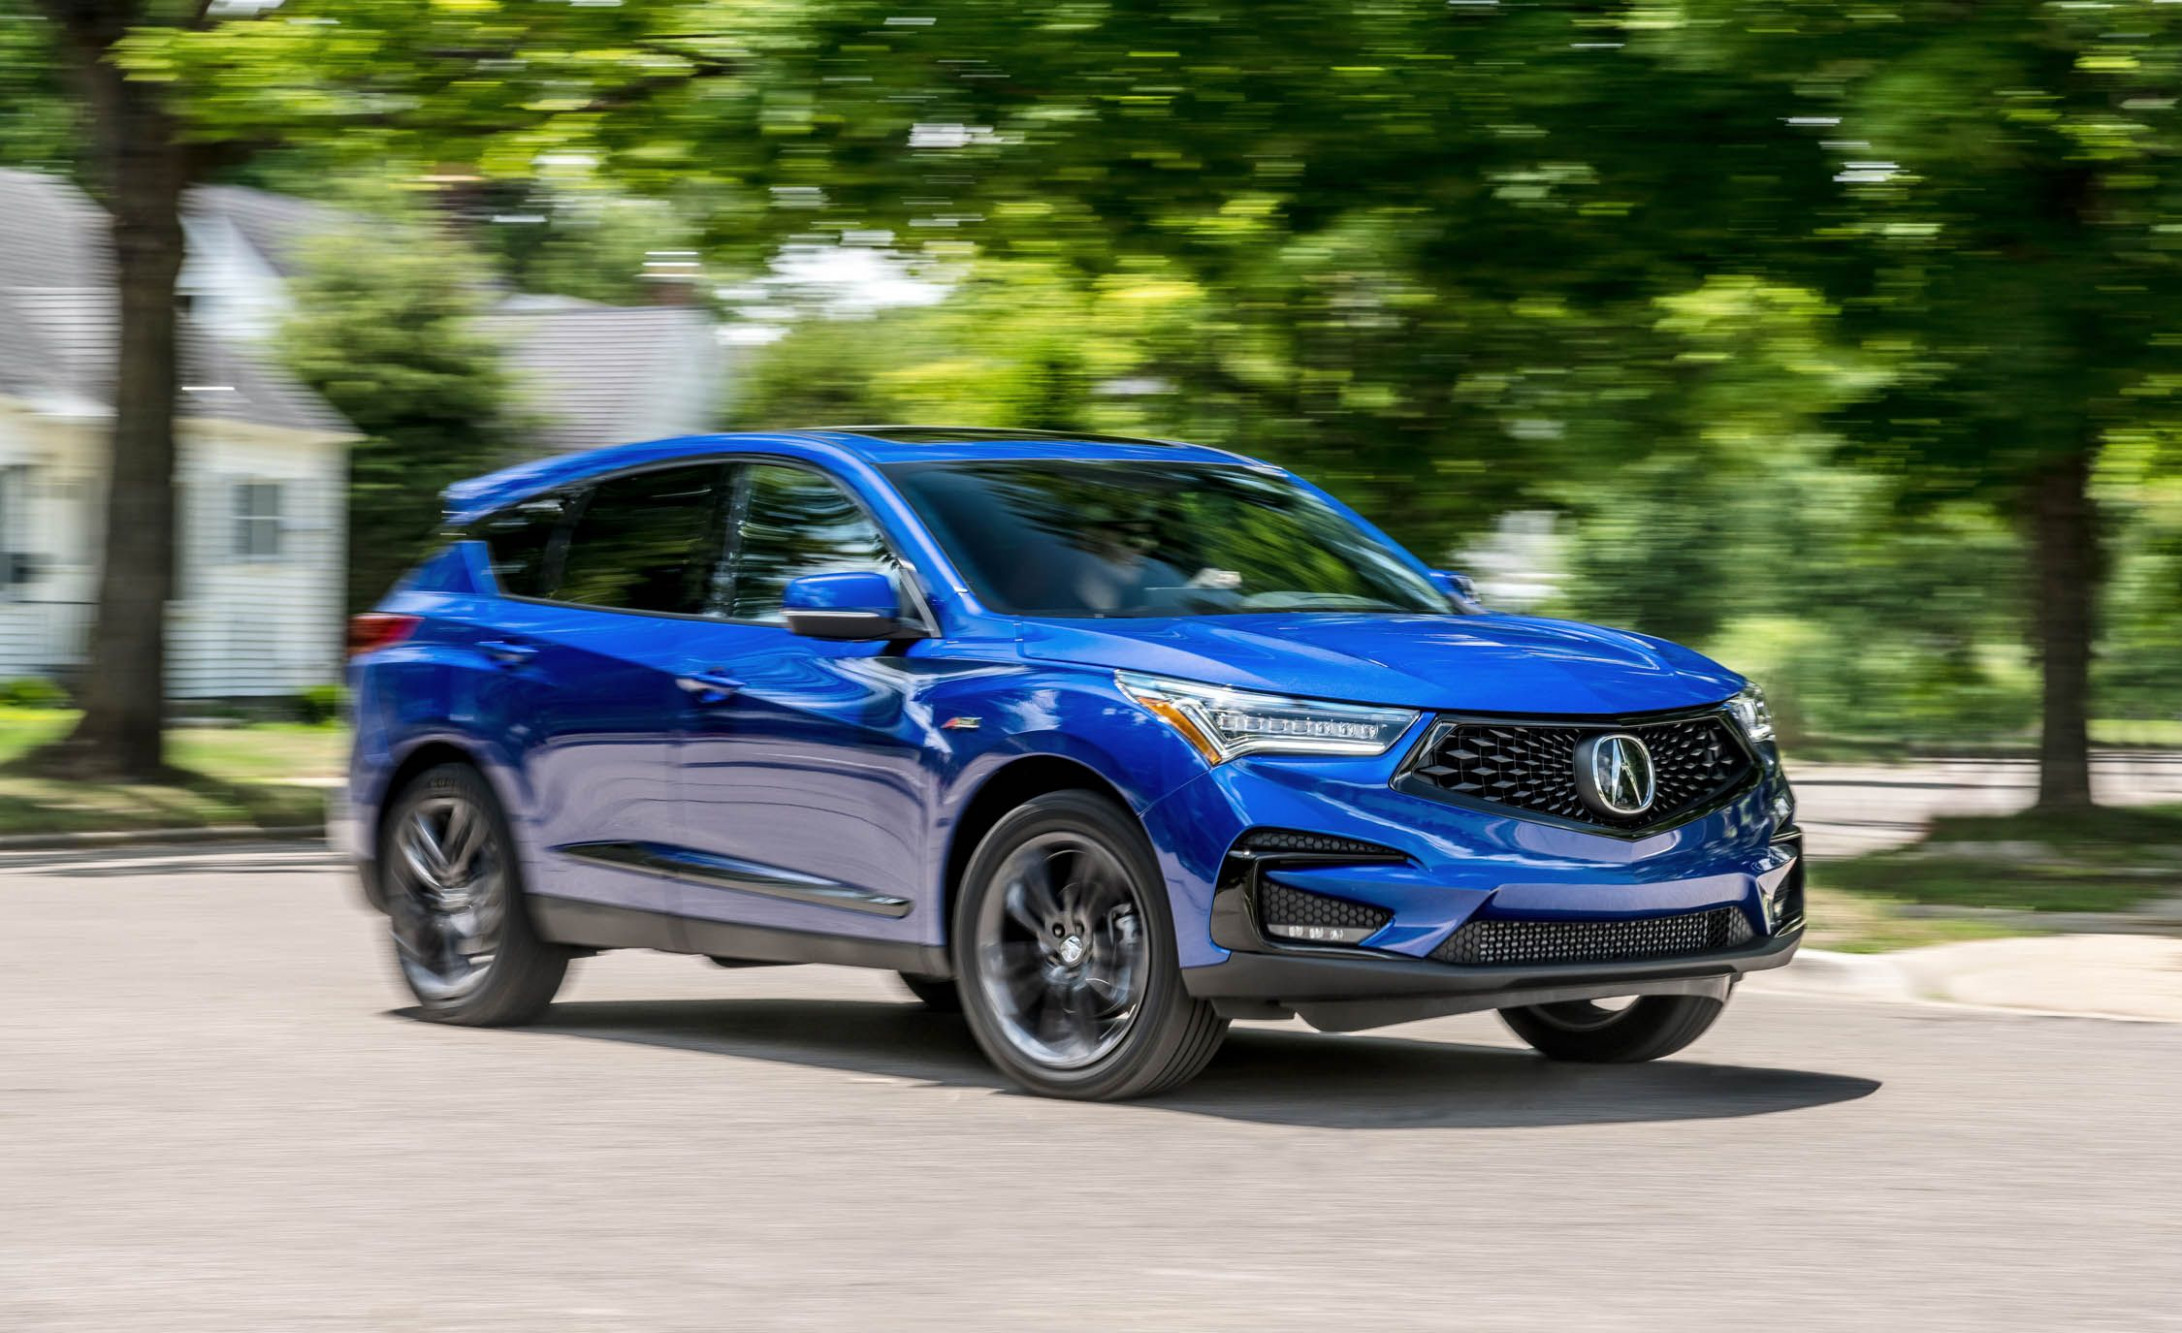 6 Acura RDX Review, Pricing, and Specs